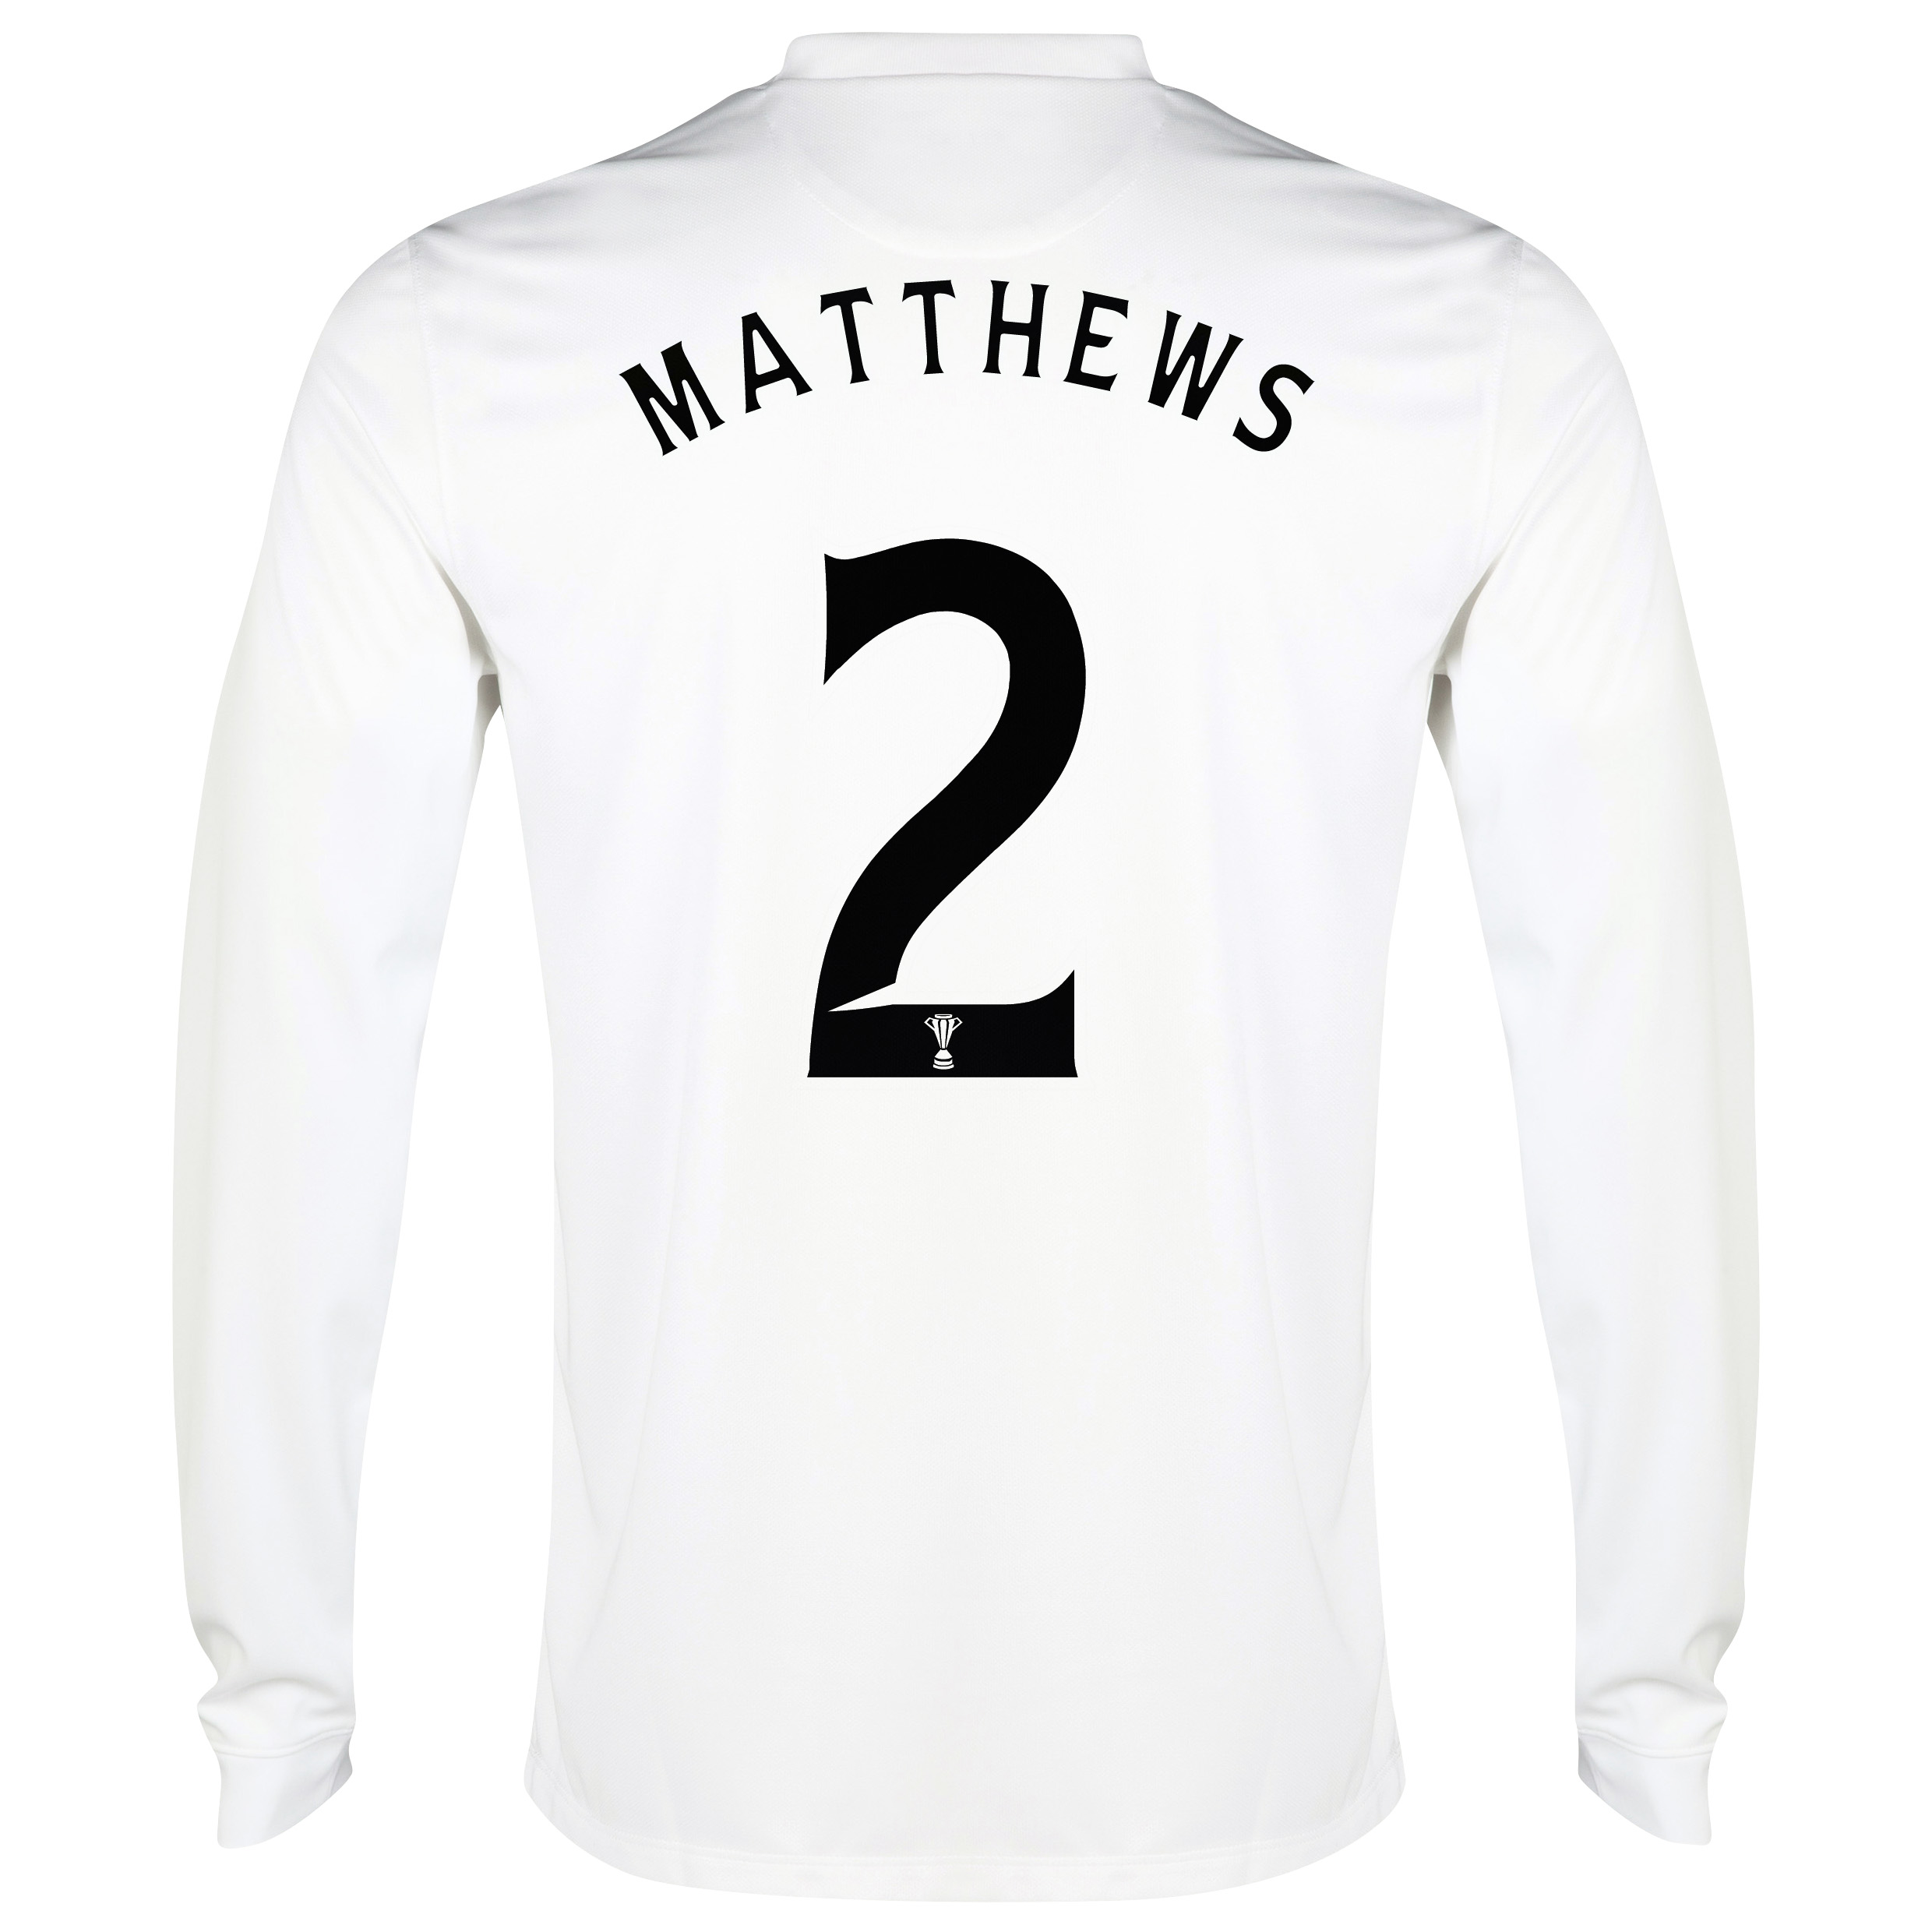 Celtic 3rd Shirt 2014/15 - Long Sleeved - Unsponsored White with Matthews 2 printing